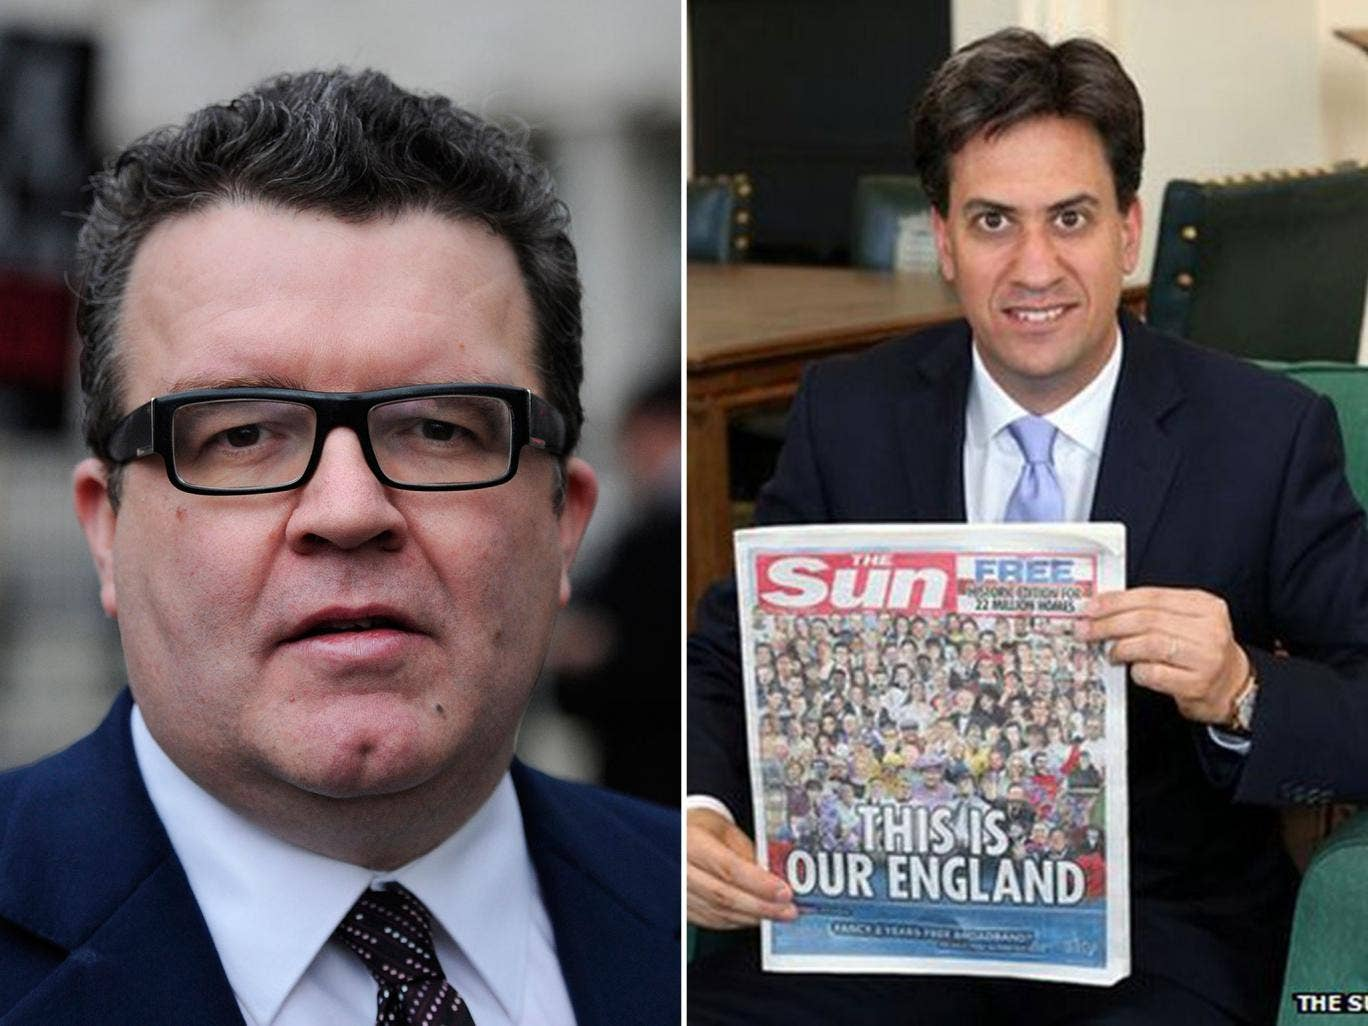 Tom Watson was outspoken in his criticism of Mr Miliband's decision to pose with a copy of the Sun